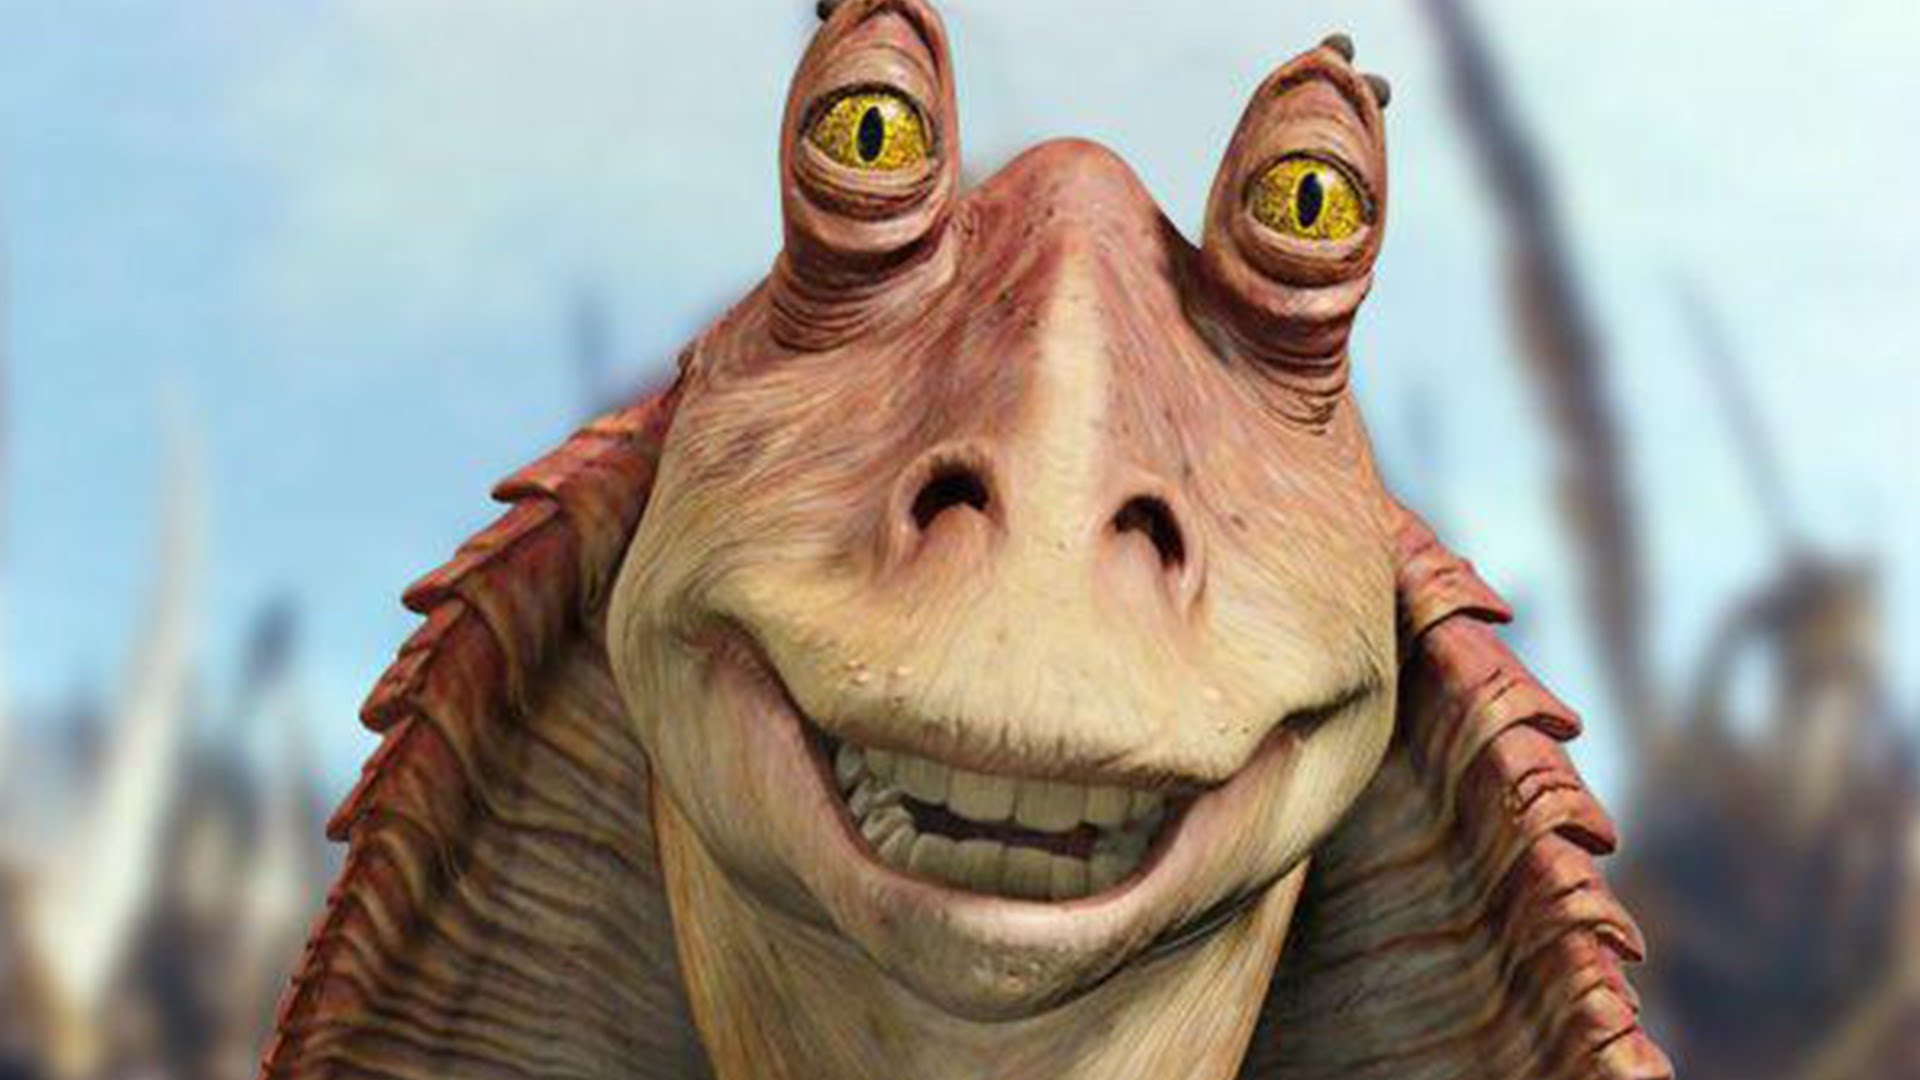 Jar Jar Binks in Star Wars: The Phantom Menace